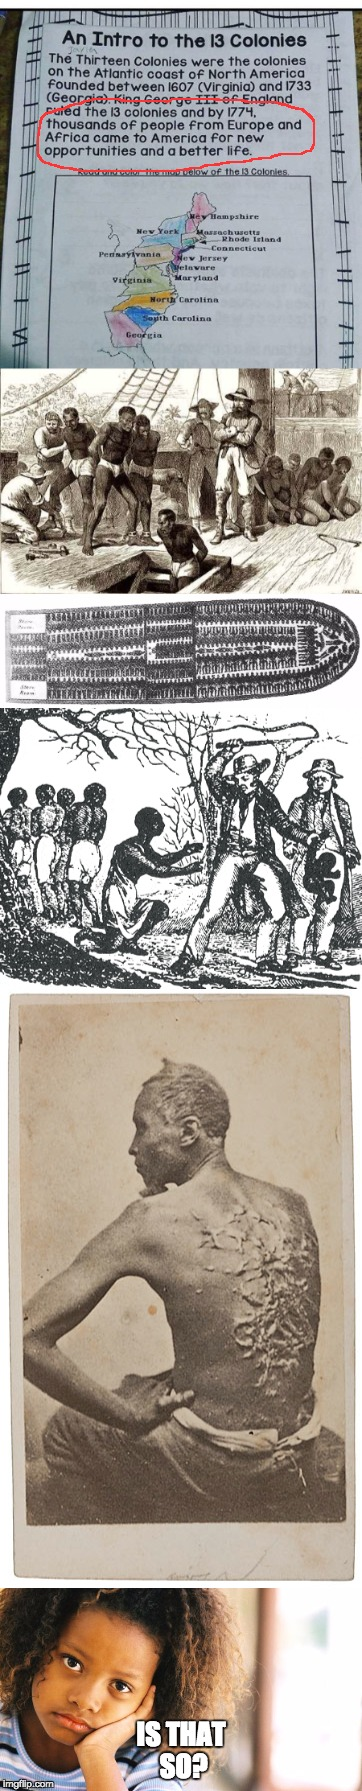 American Education on Slavery | IS THAT SO? | image tagged in slavery,america,education,school,american,colonialism | made w/ Imgflip meme maker